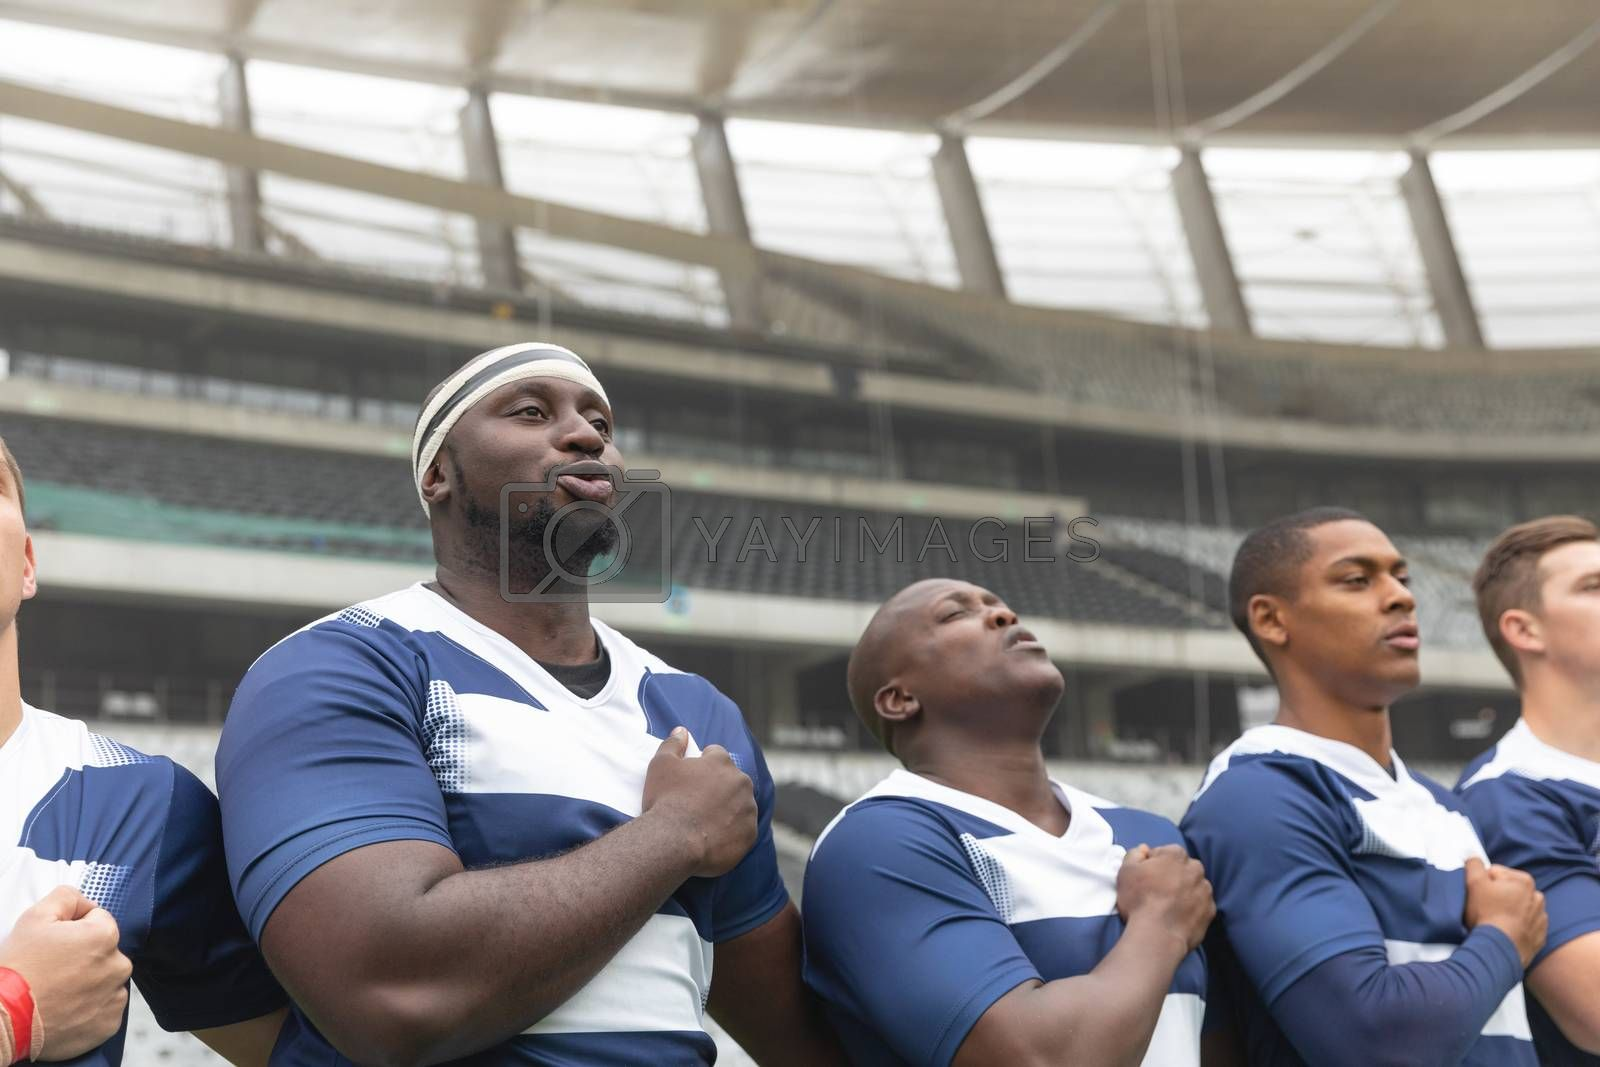 Side view of group of diverse male rugby players taking pledge together in stadium